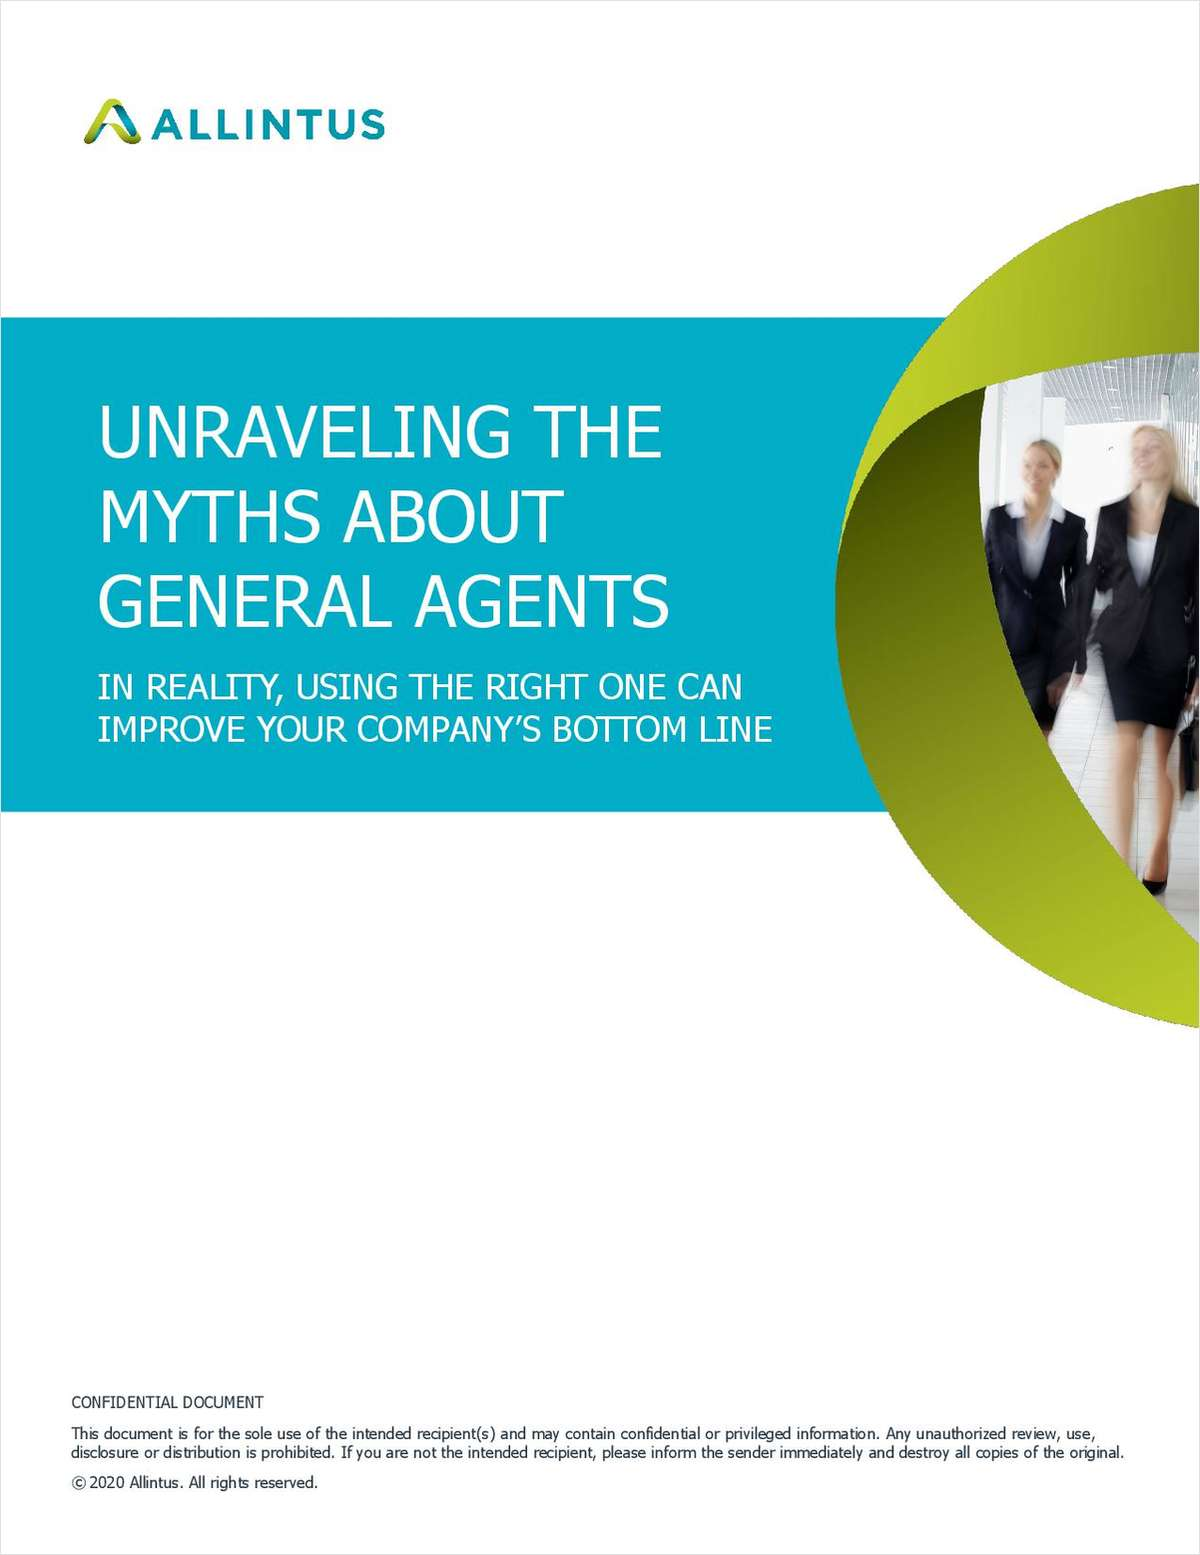 Unraveling The Myths About General Agents